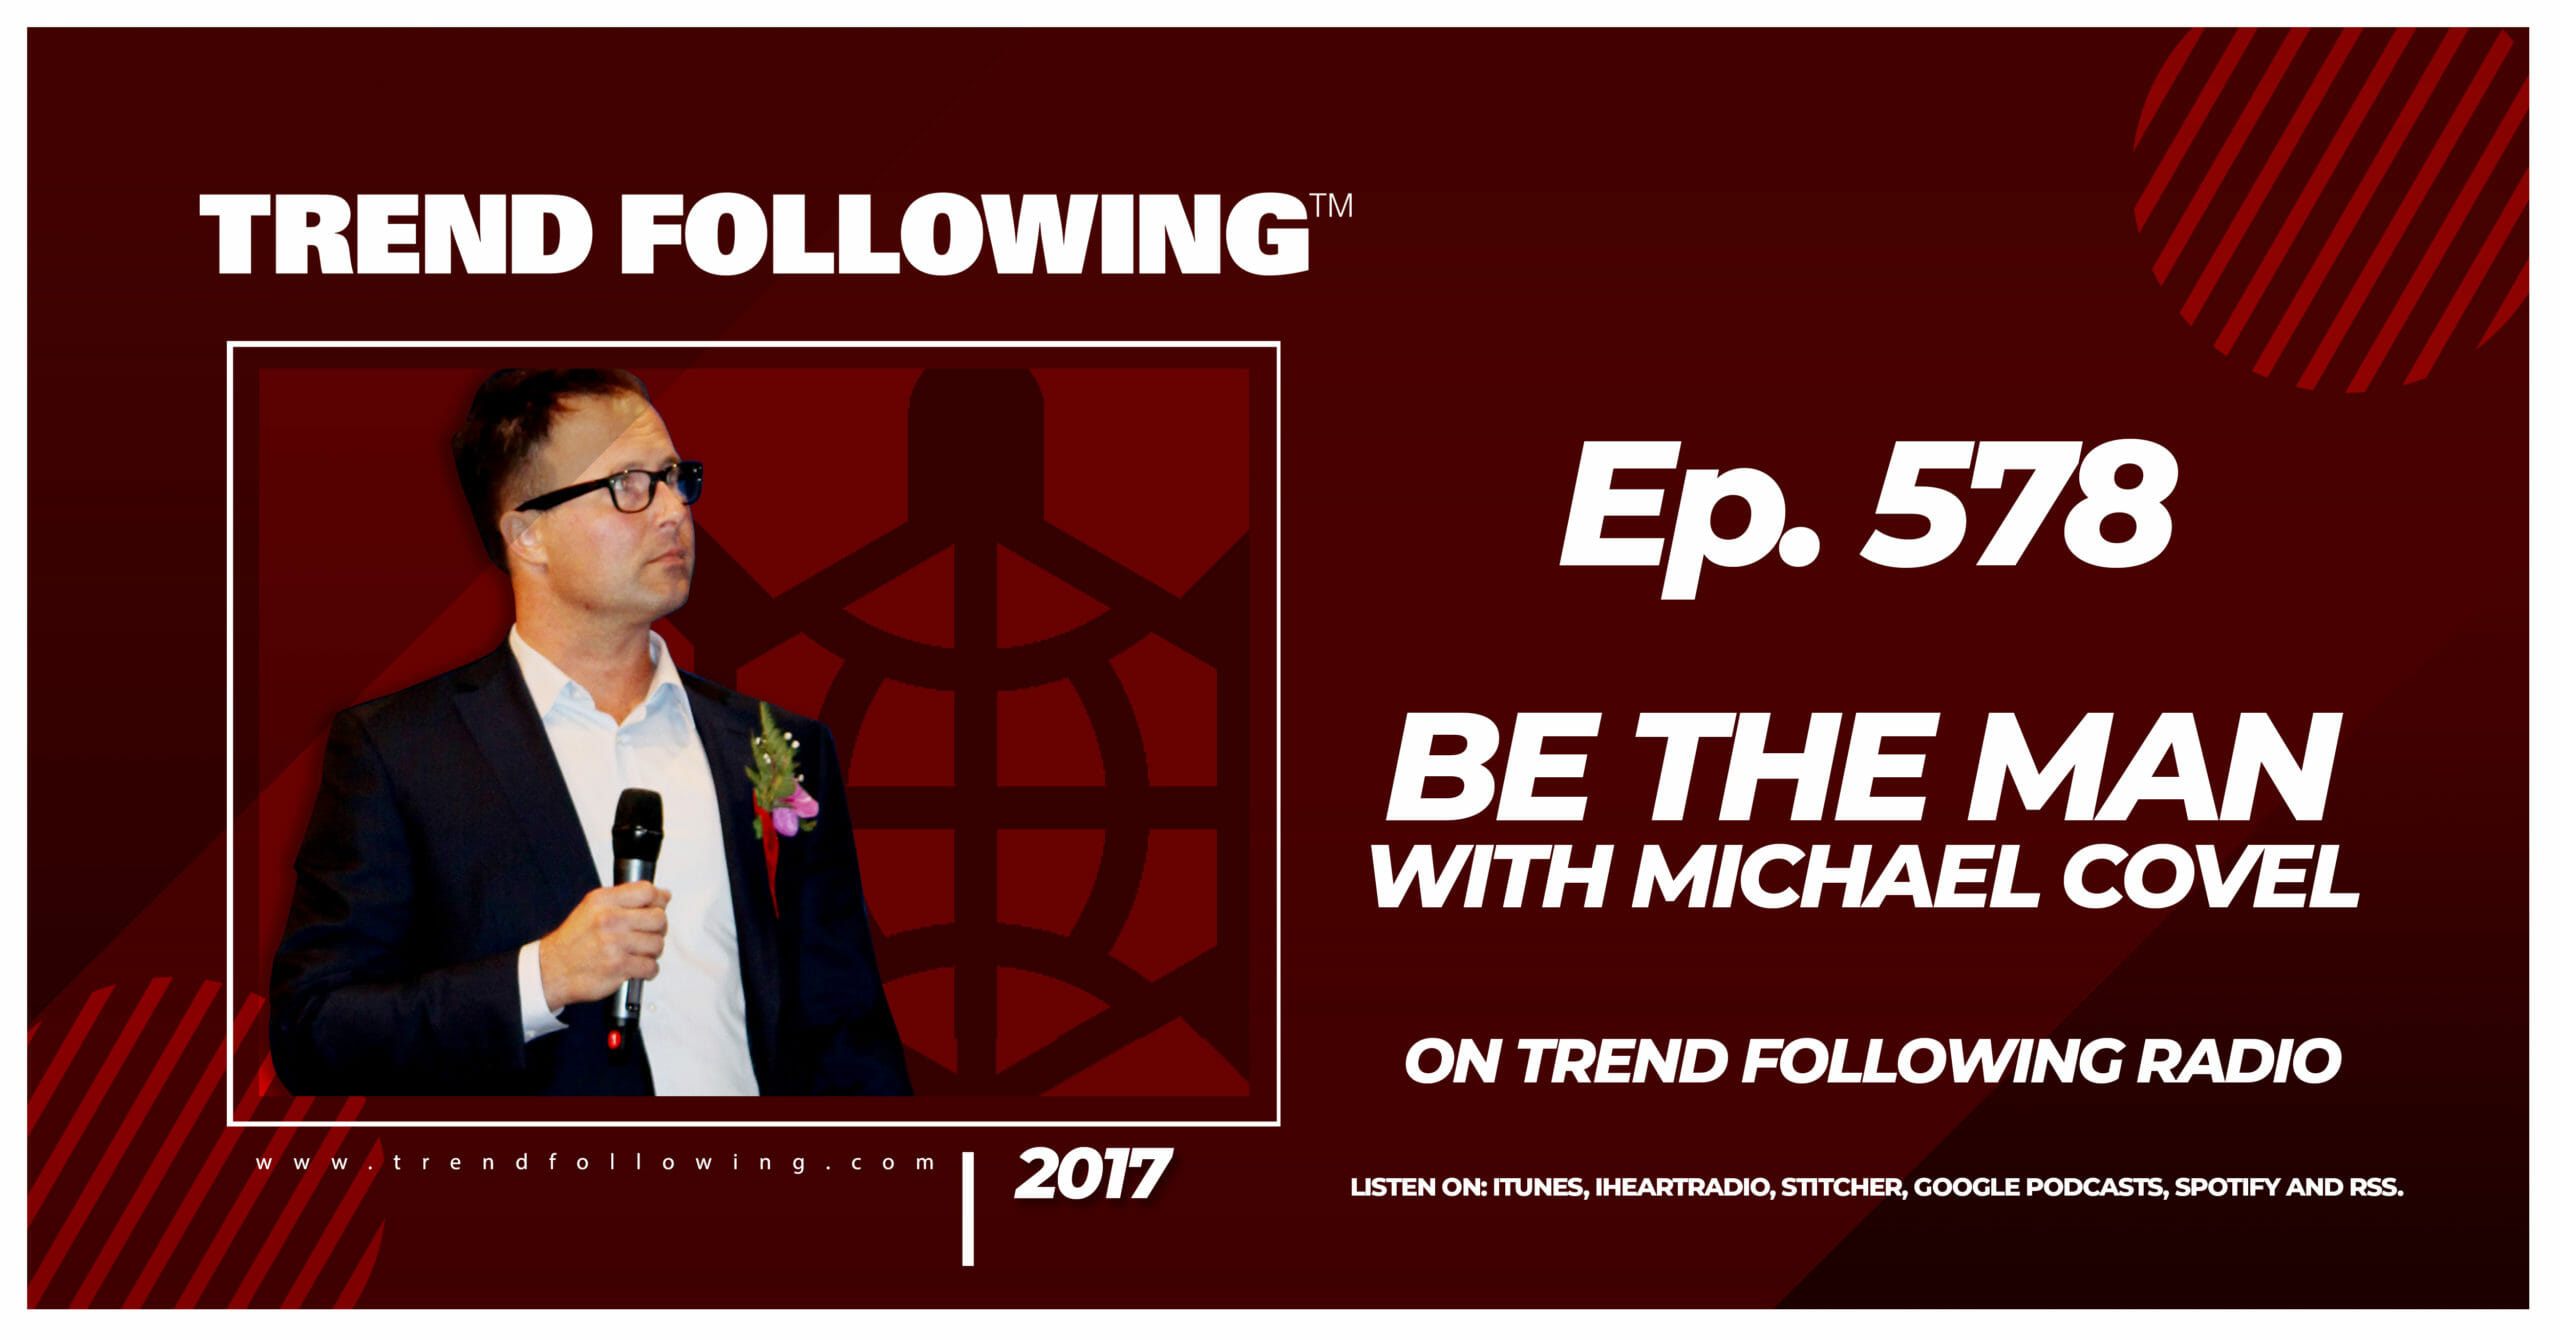 Be the Man with Michael Covel on Trend Following Radio